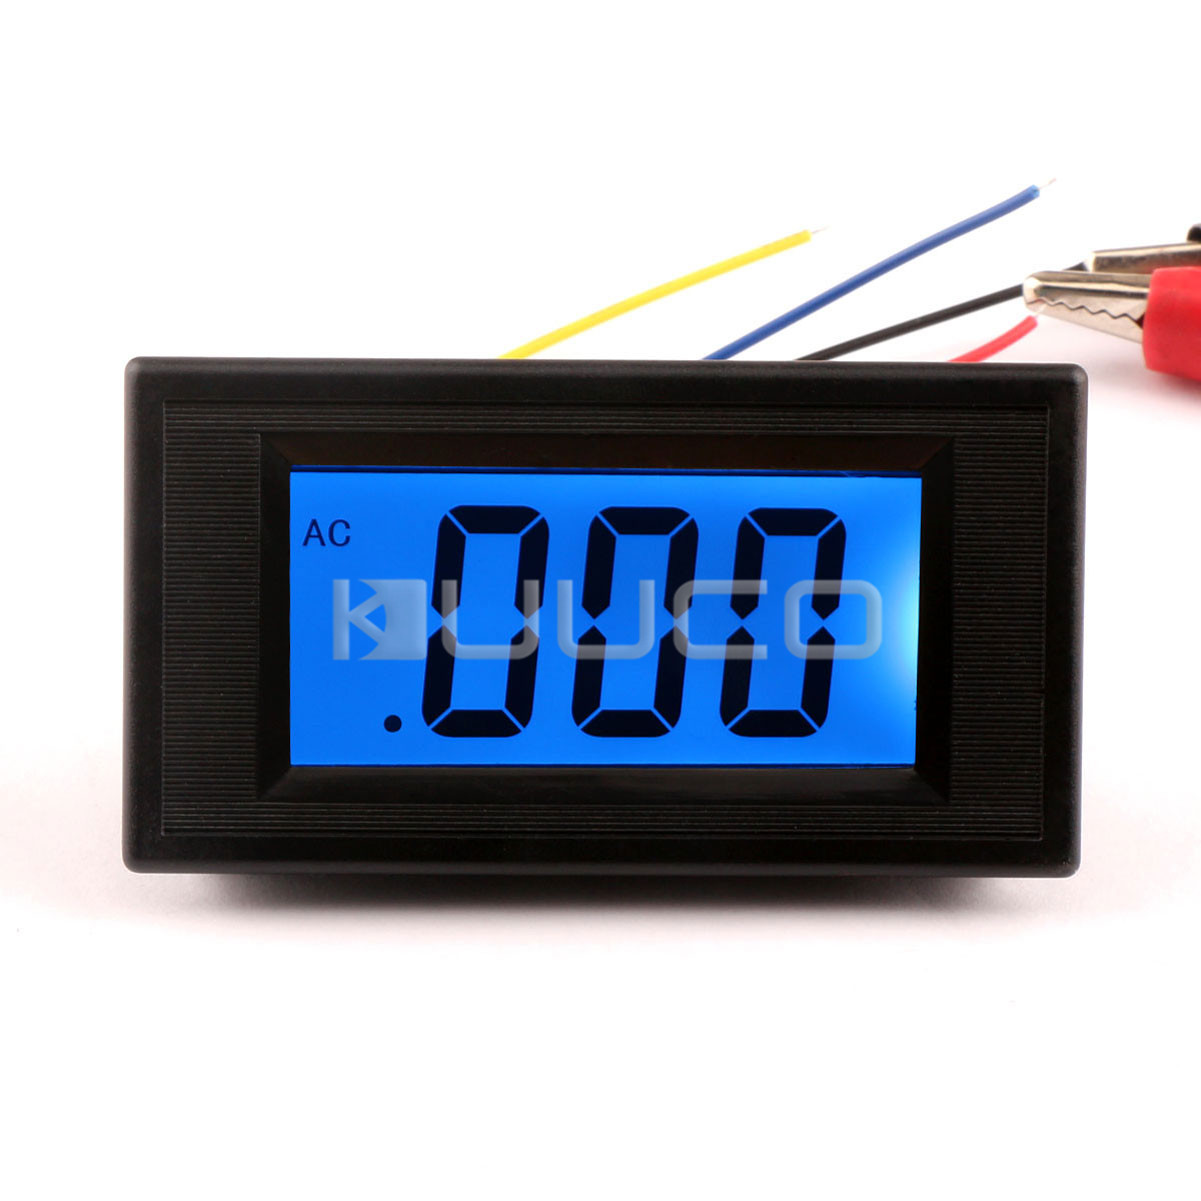 ac digital tester 0 2ma digital ammeter panel meter blue. Black Bedroom Furniture Sets. Home Design Ideas